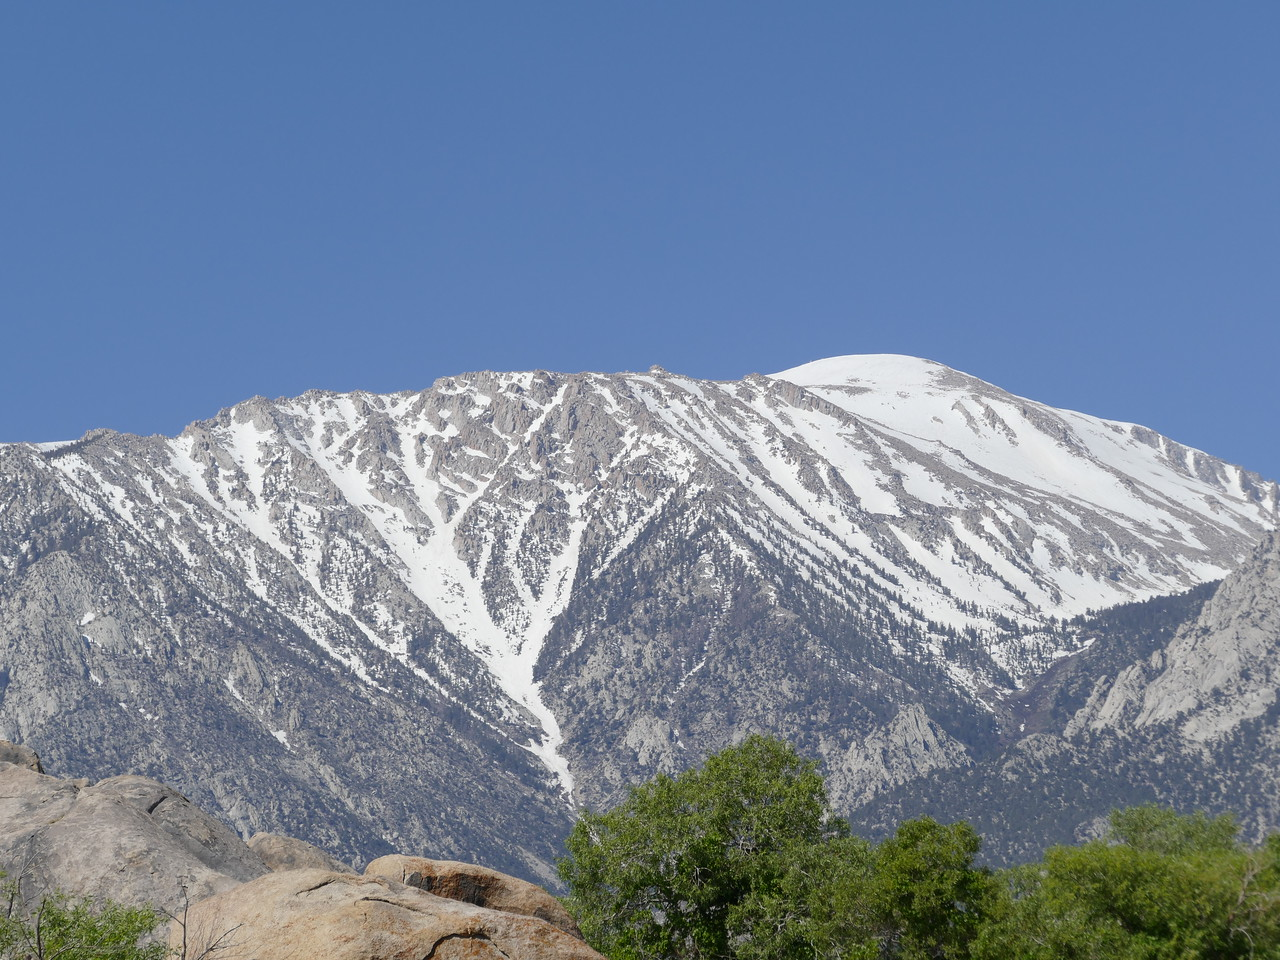 Beyond the Alabama Hills,  we could see snow on the line of Sierra peaks.